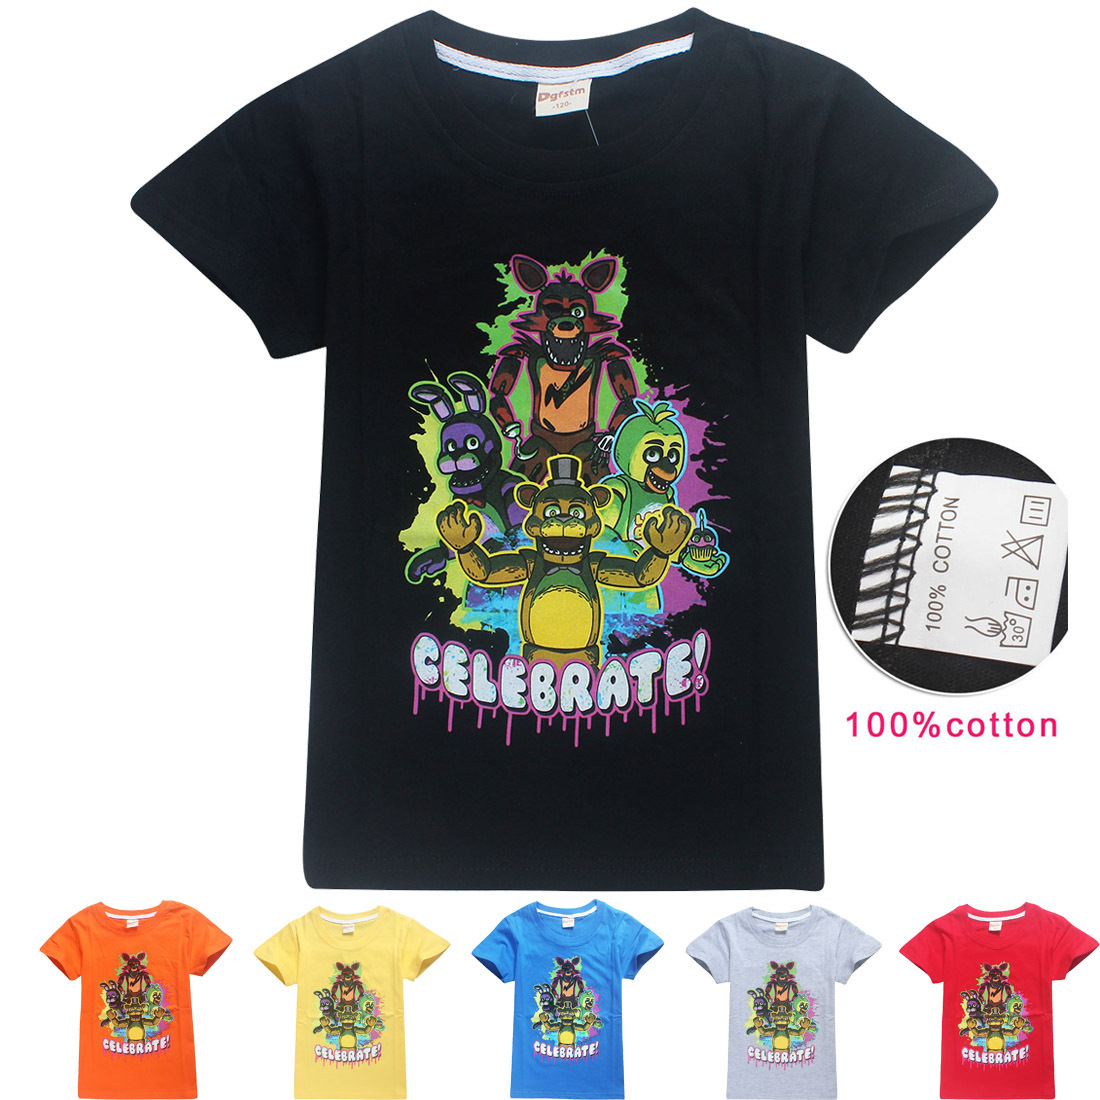 2018 New Baby Five Nights at Freddys cotton T-Shirt Children kids Boys Girls Clothes FNAFshort sleeve tshirt for large child